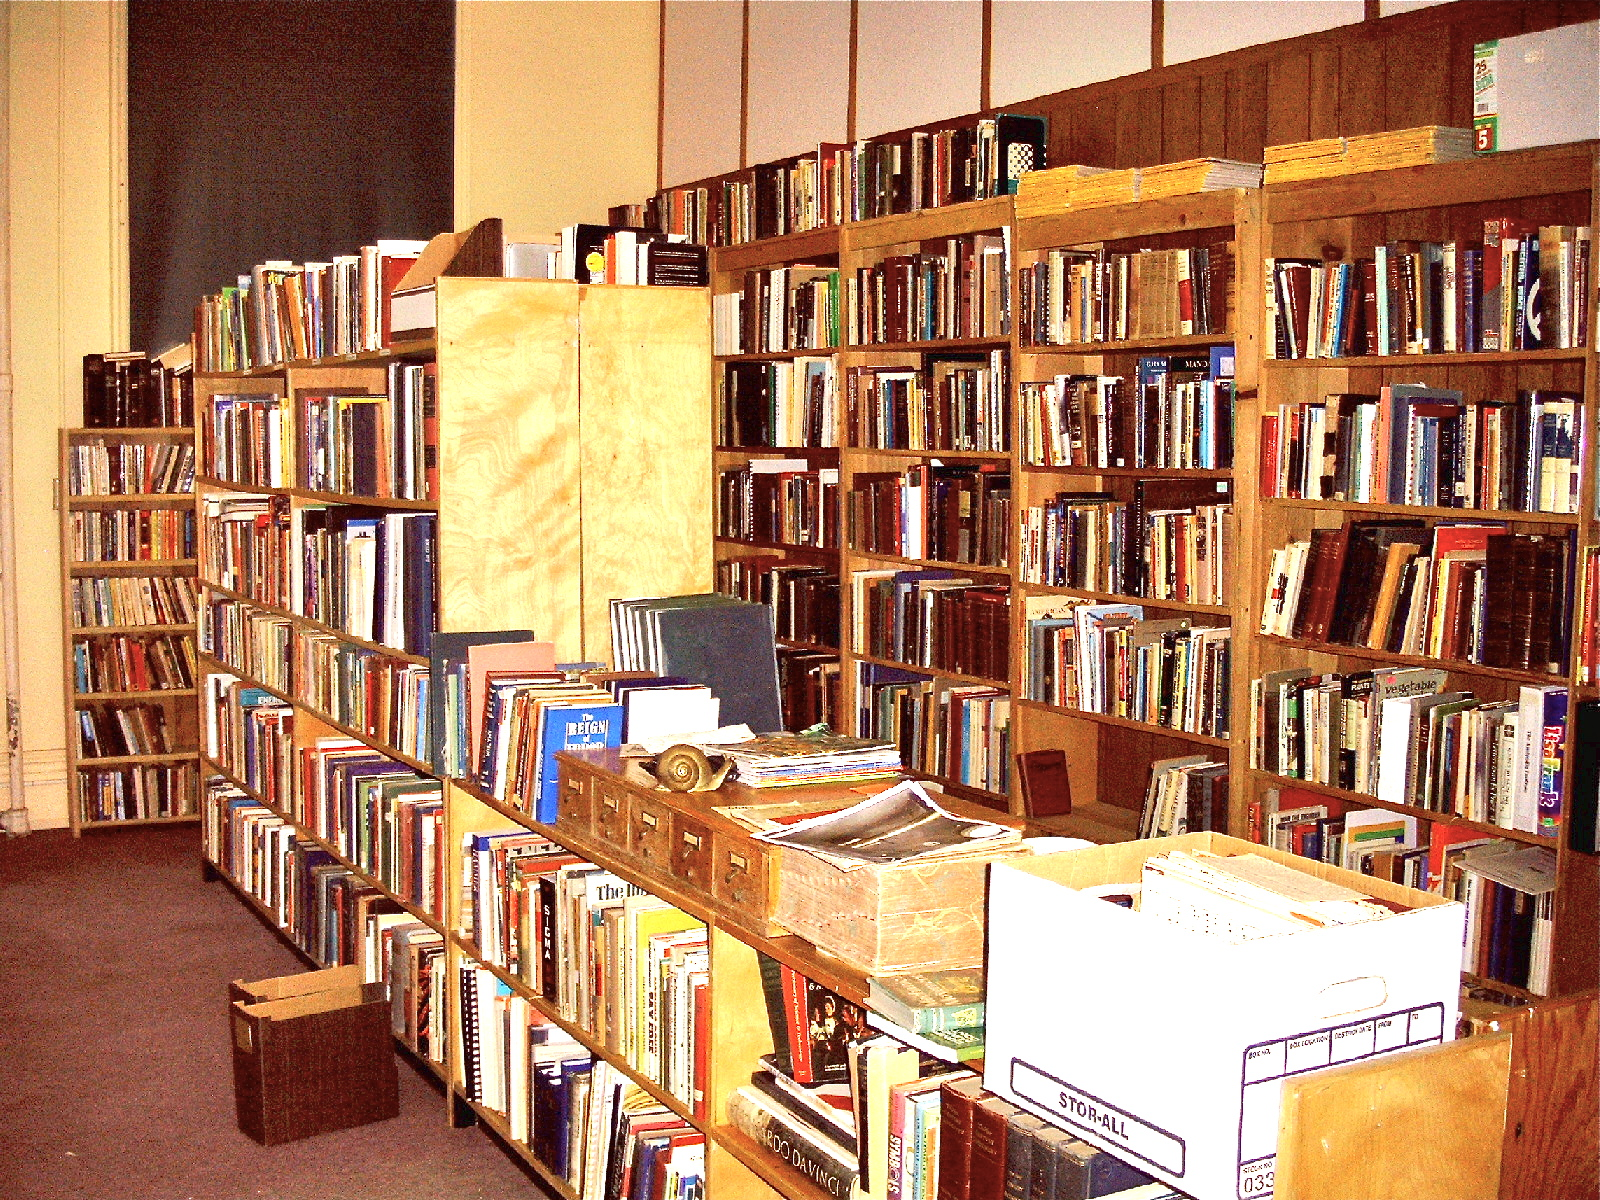 PSI Library and Archive